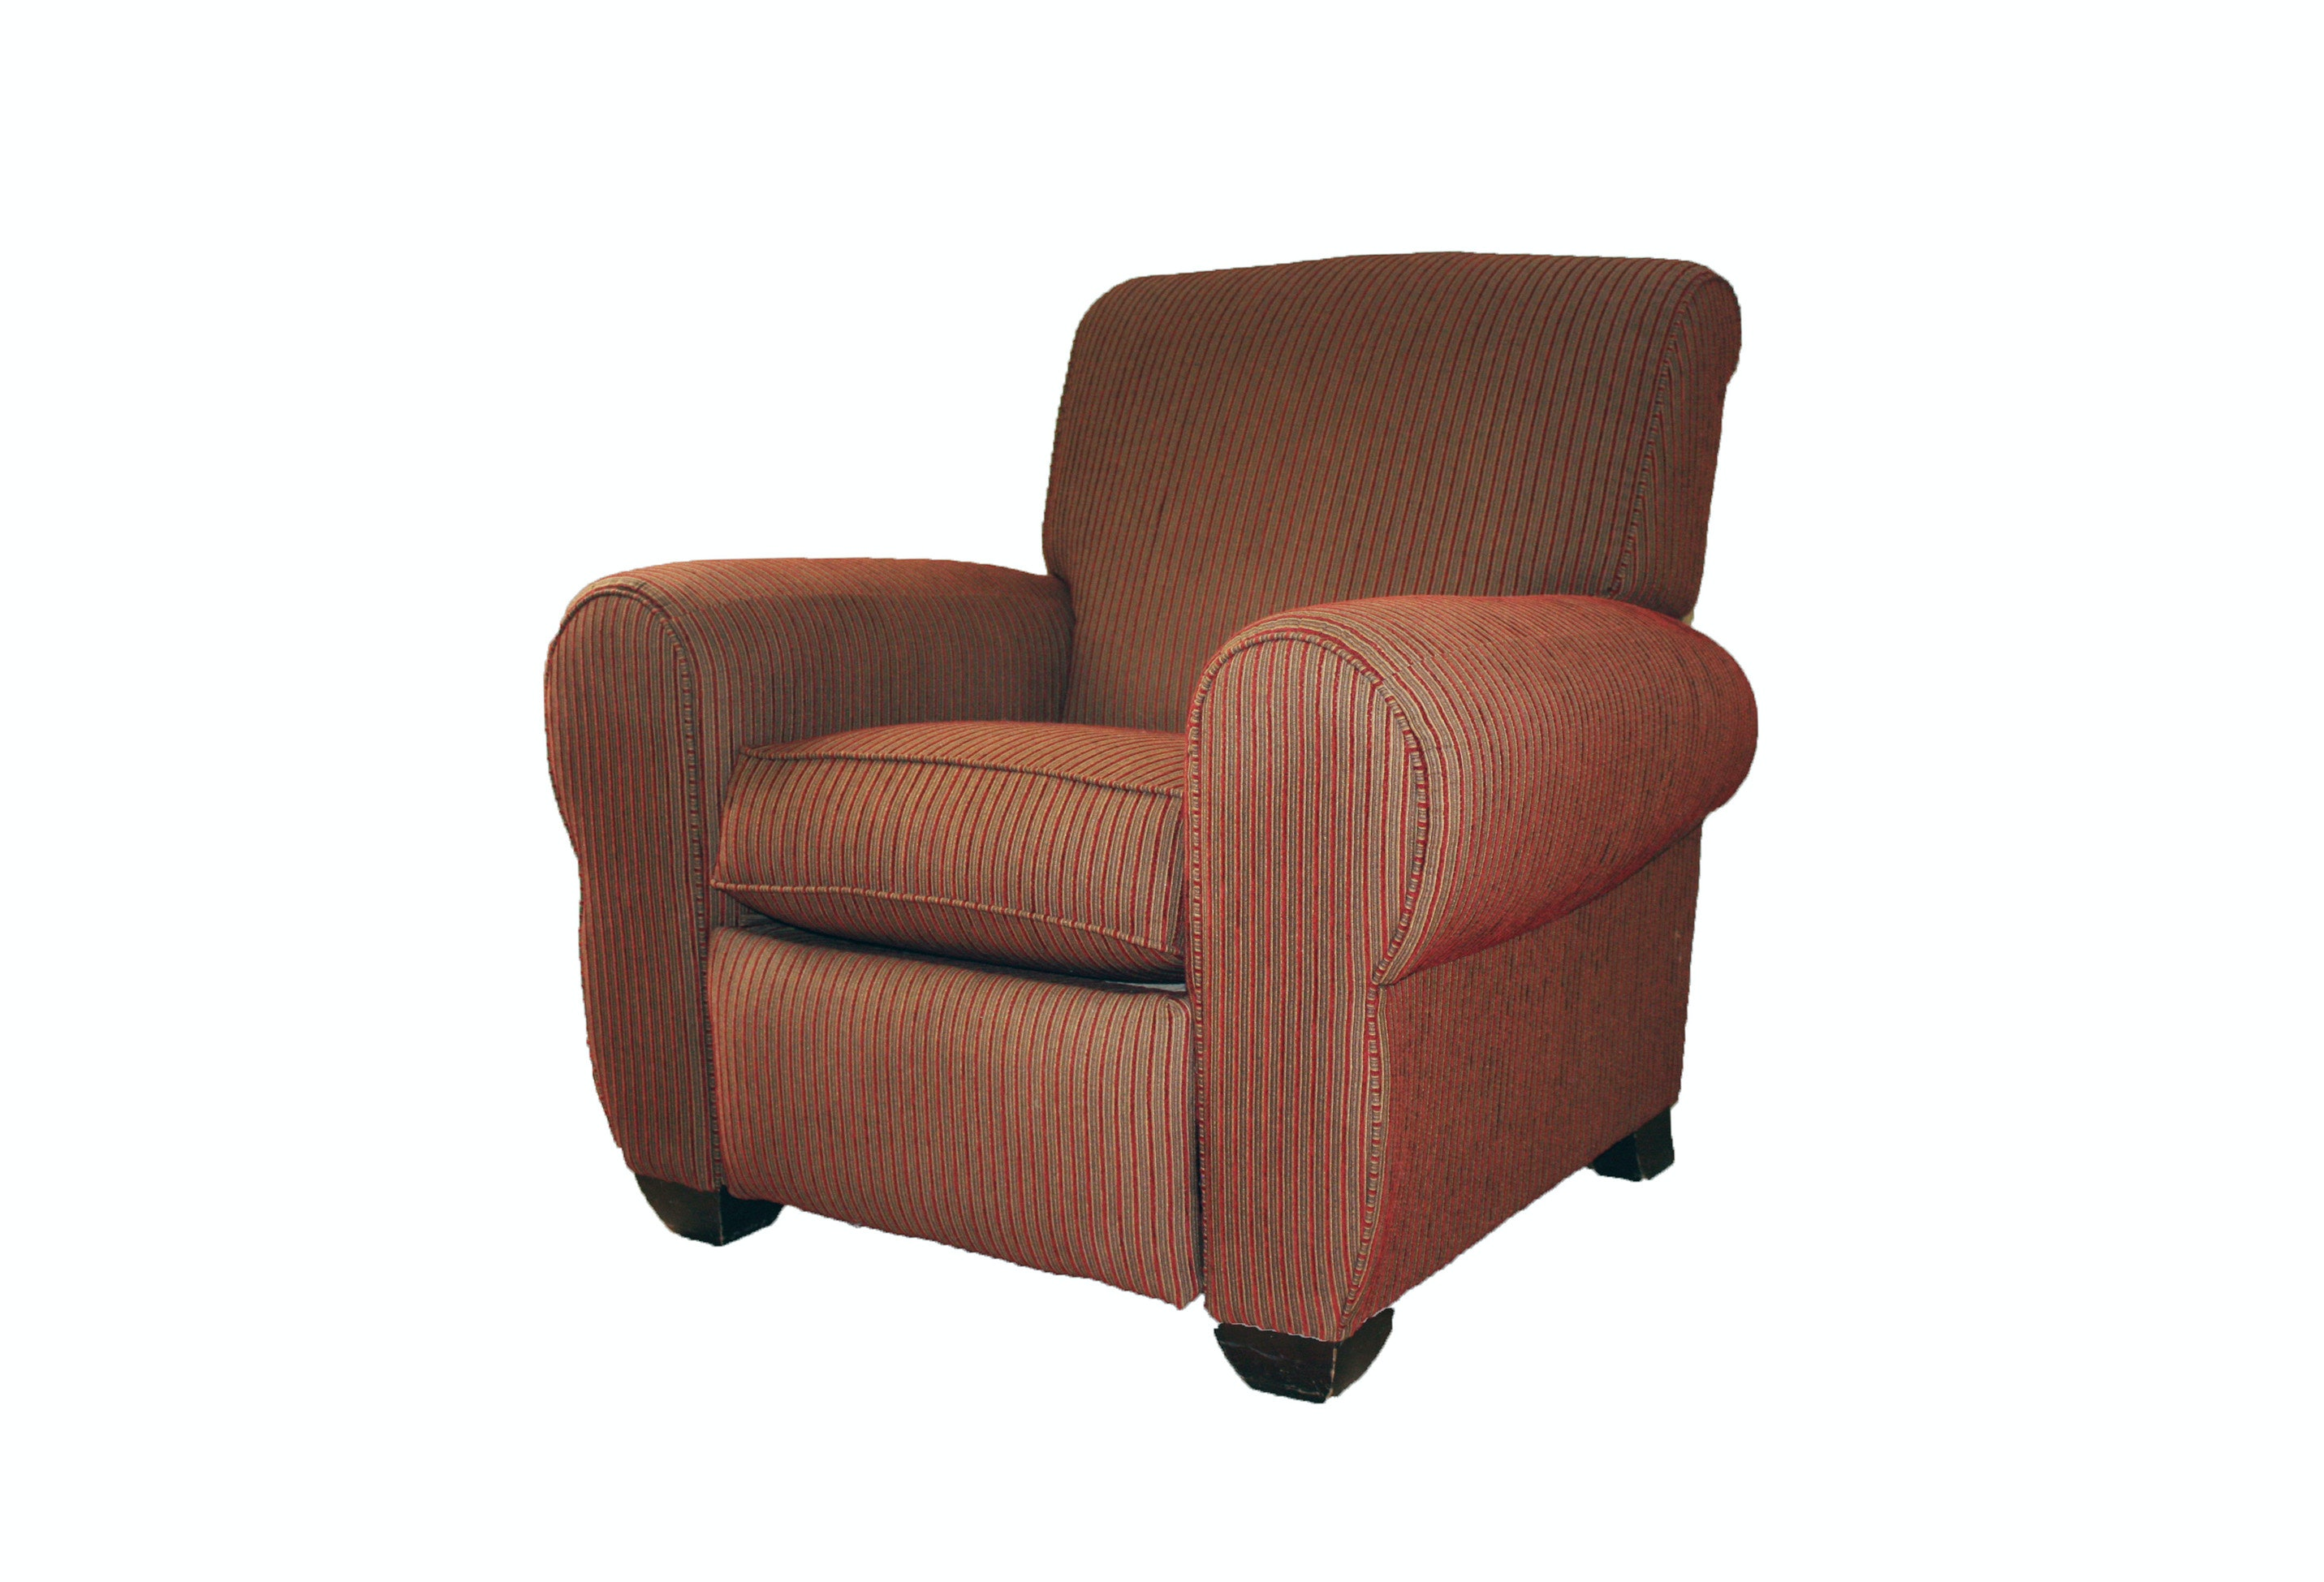 Red Striped Club Chair Recliner by La-Z-Boy